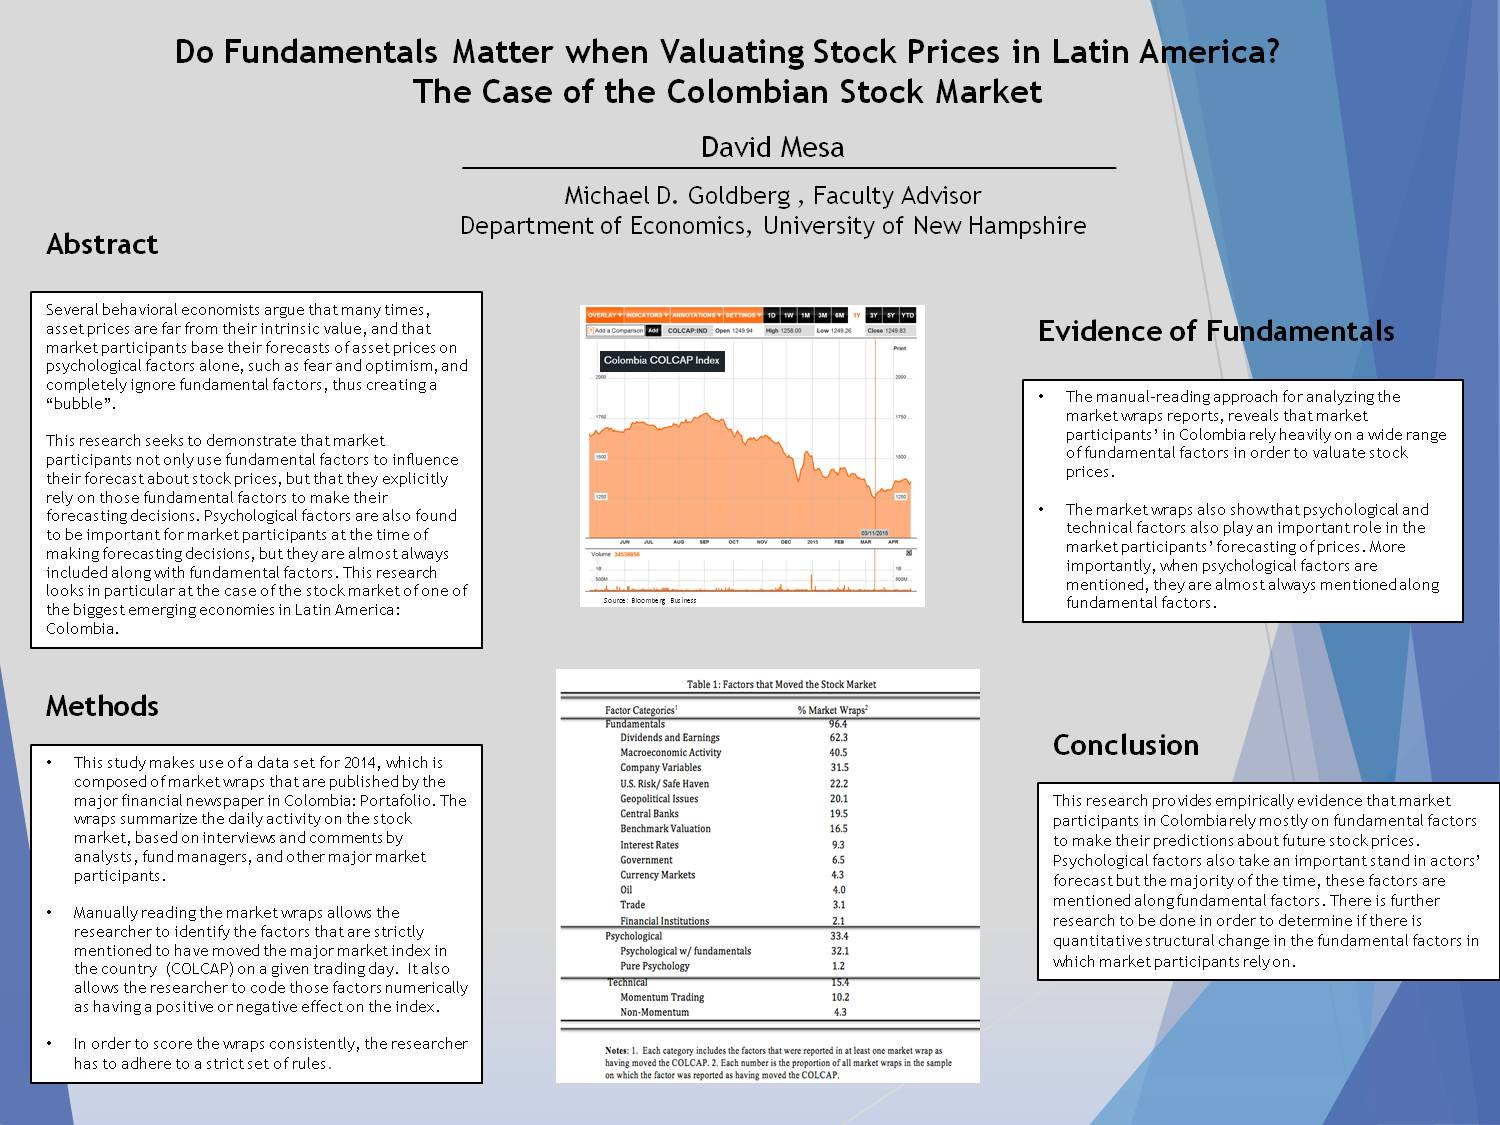 Do Fundamentals Matter When Valuating Stock Prices In Latin America? The Case Of The Colombian Stock Market by doy5